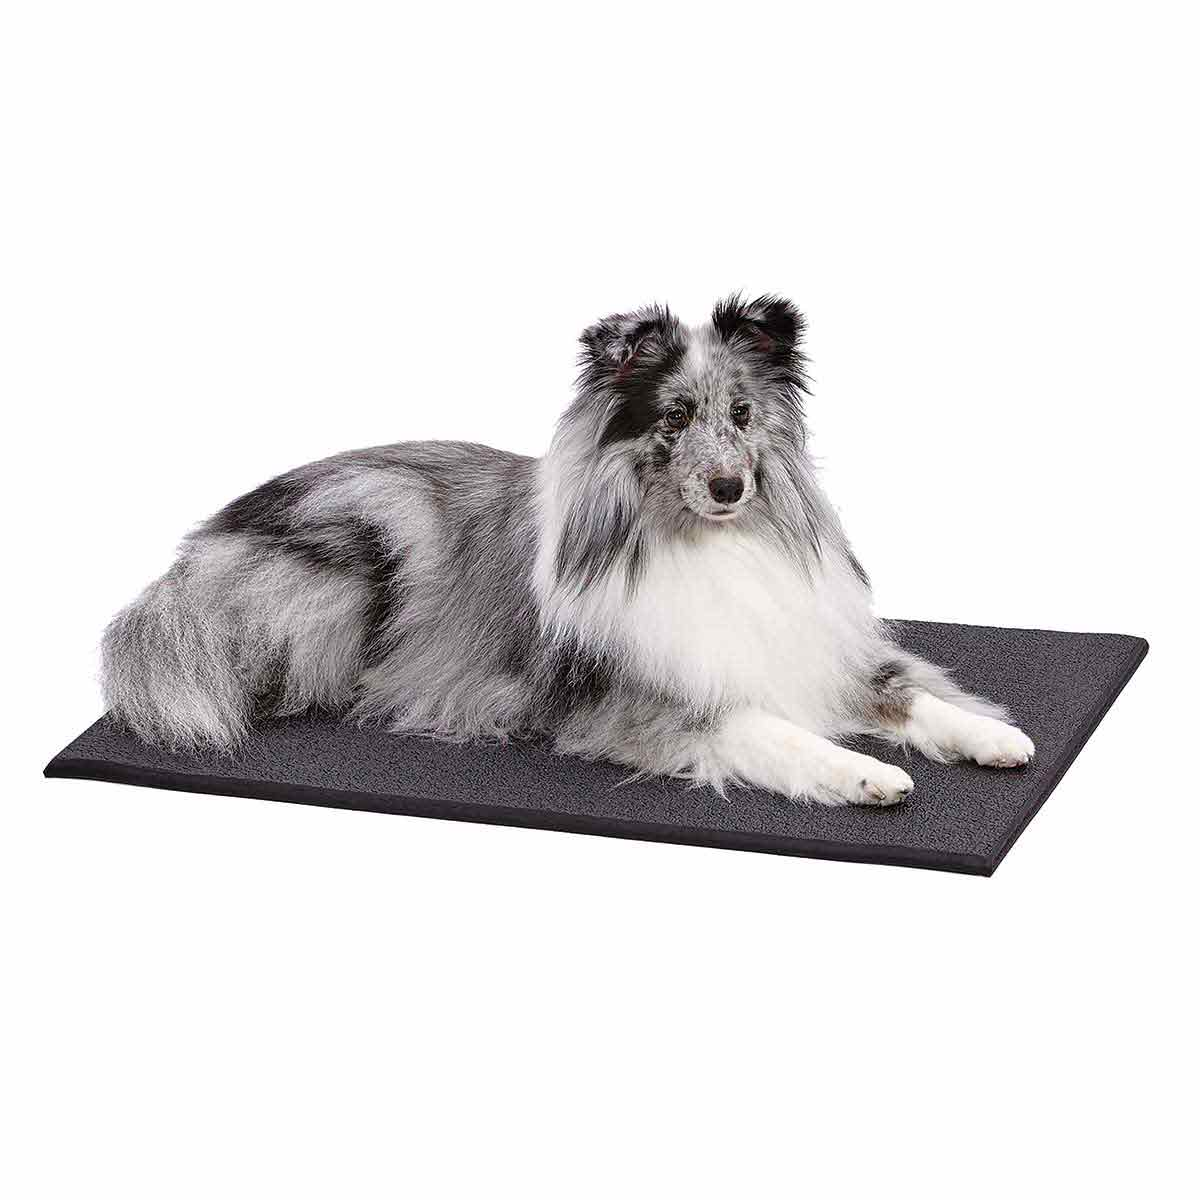 Pet Bedding or Table Top Mat - Medium Midwest Cushioned Crate Mat